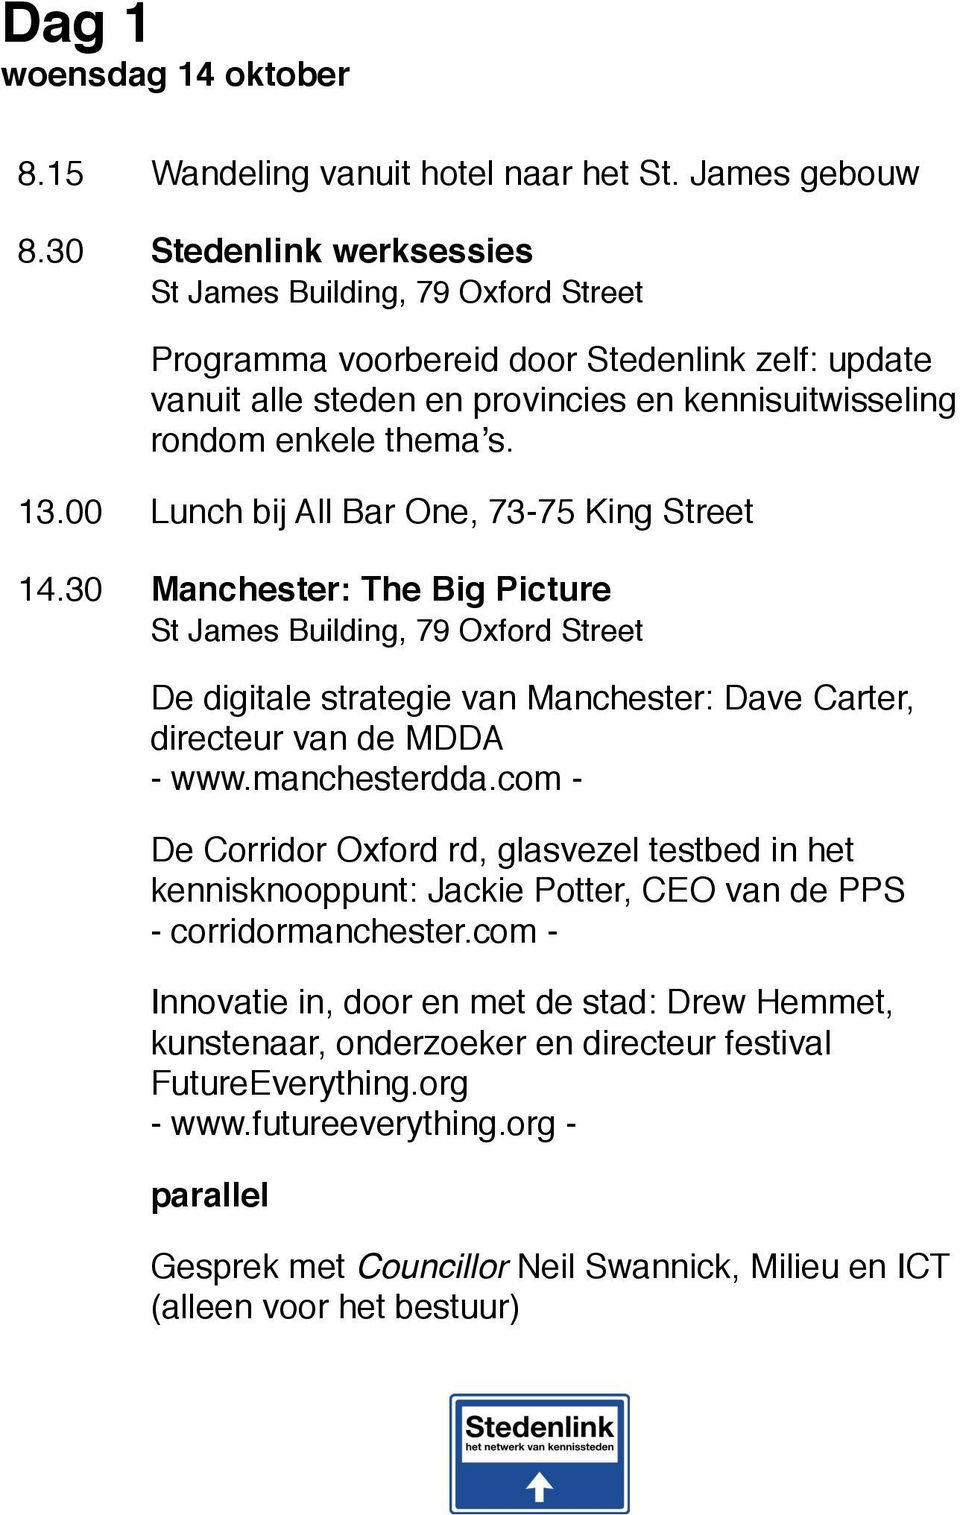 00 Lunch bij All Bar One, 73-75 King Street 14.30 Manchester: The Big Picture St James Building, 79 Oxford Street De digitale strategie van Manchester: Dave Carter, directeur van de MDDA - www.